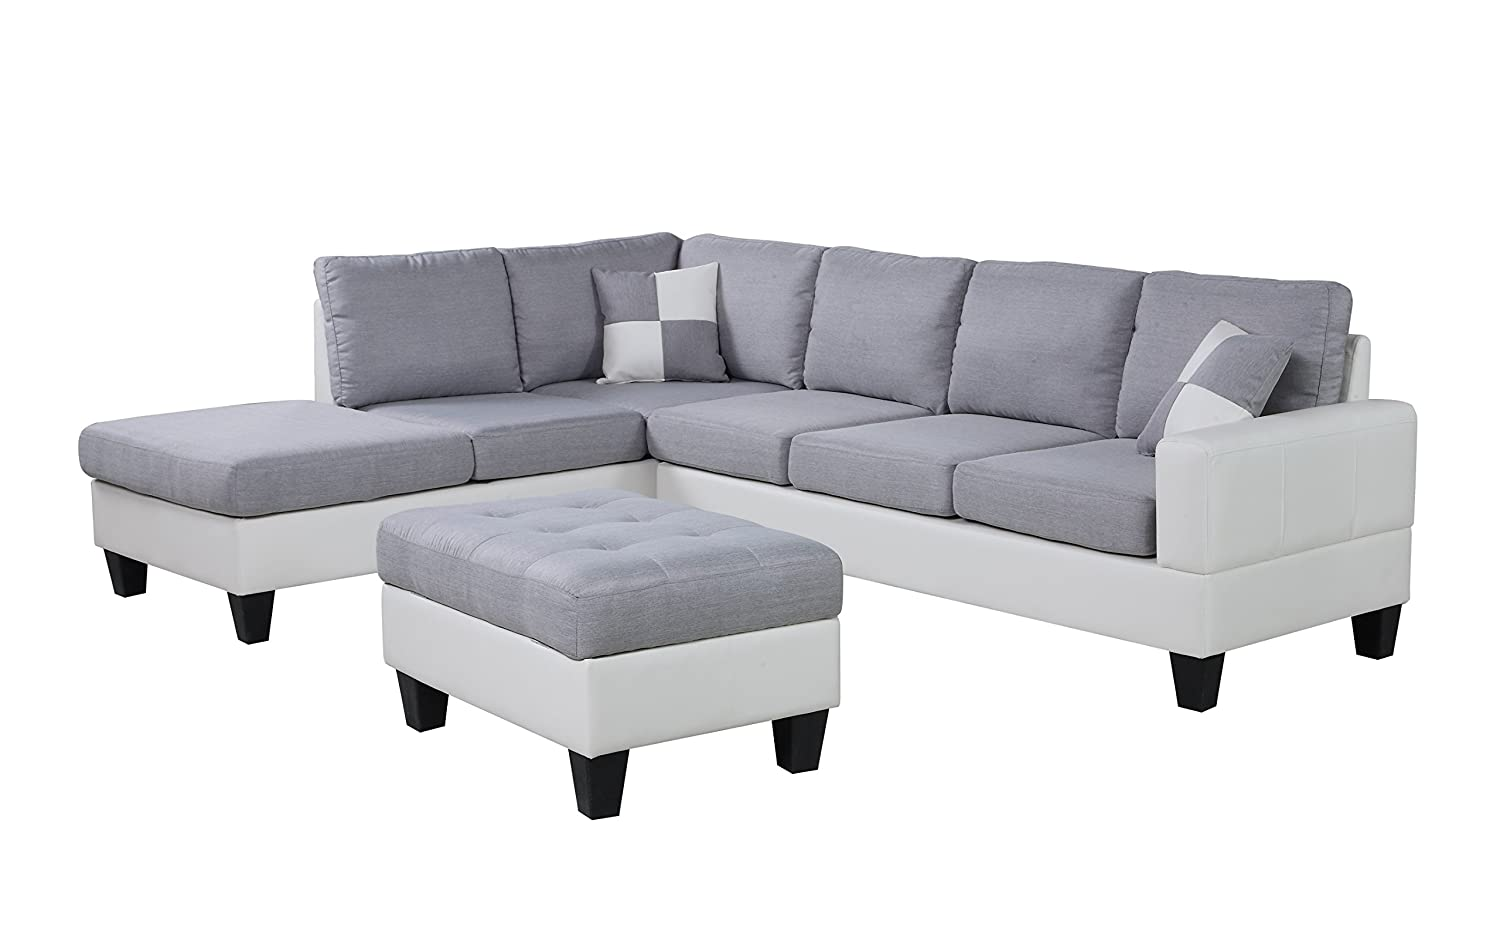 Best Sectional Sofa Reviews and Buying Guide 10